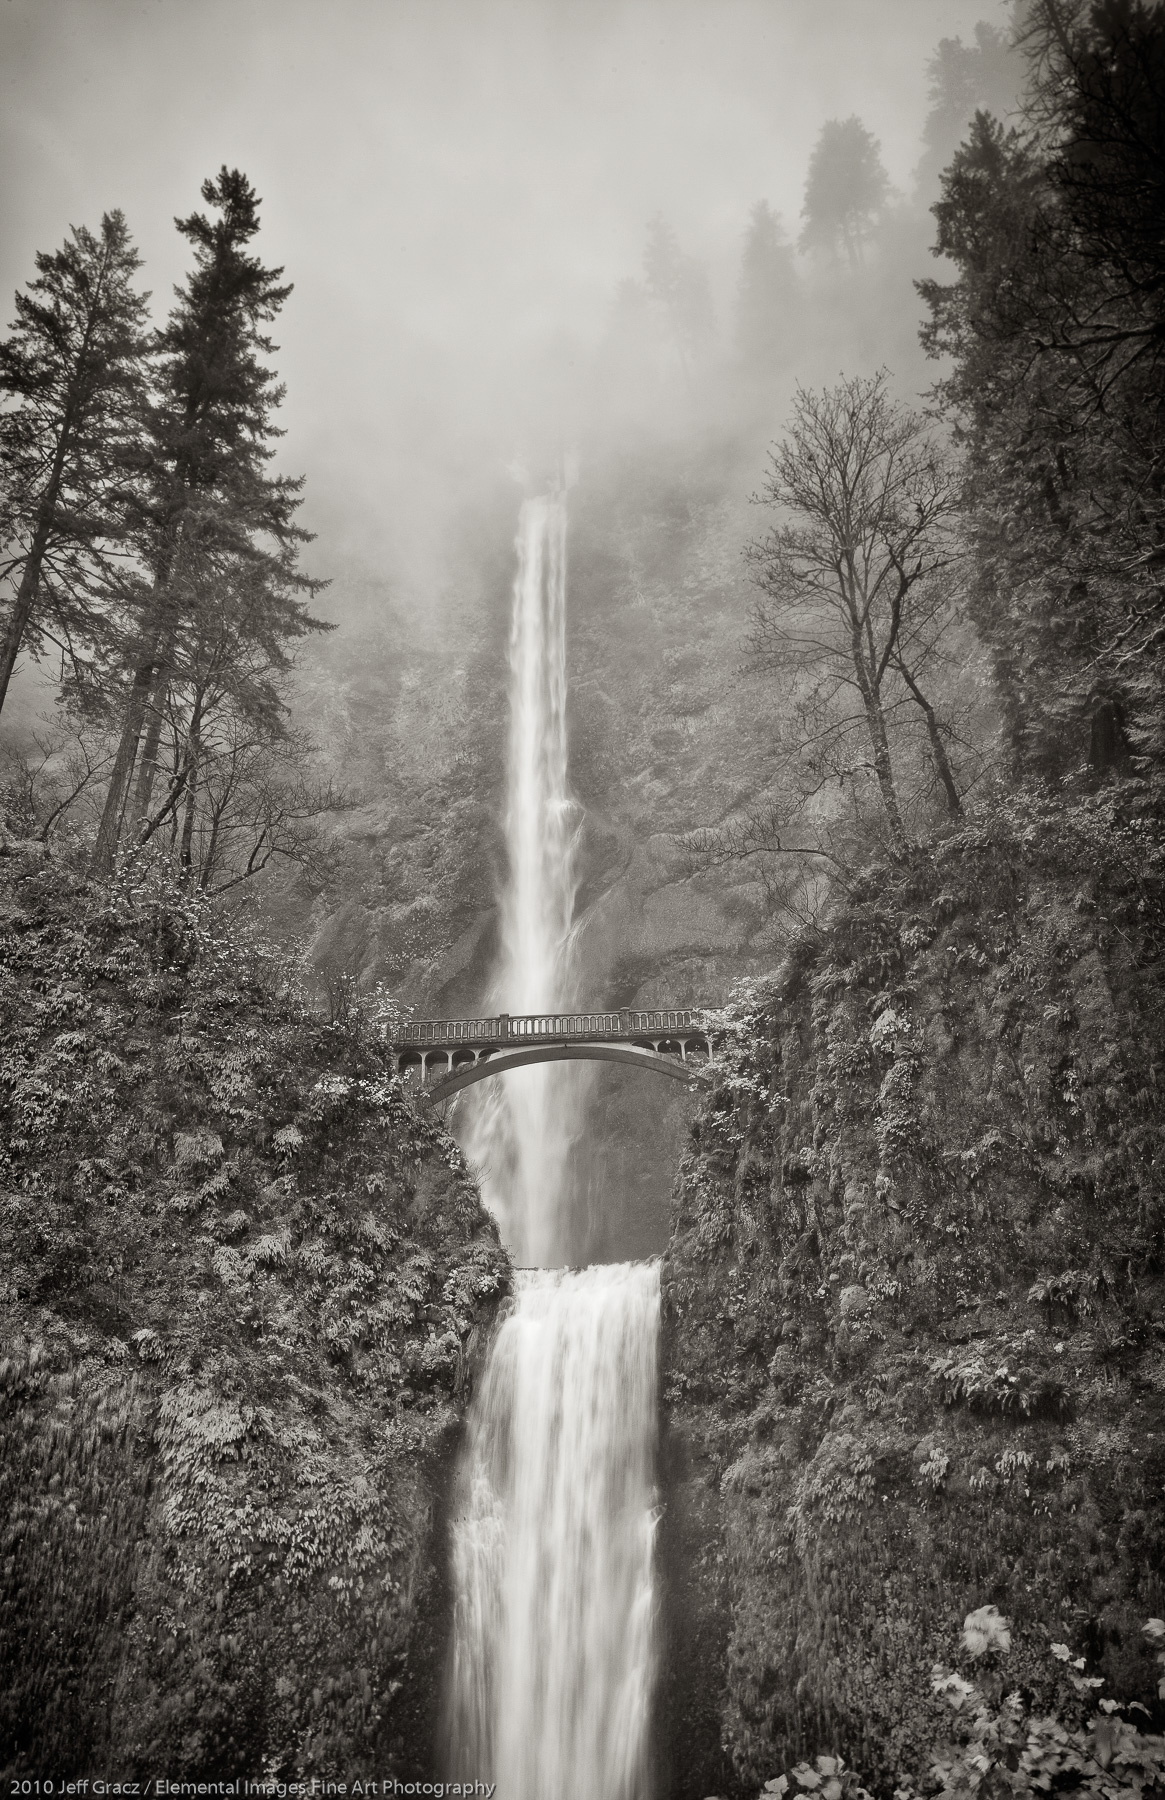 Multnomah Falls in the Fog | Columbia River Gorge National Sc | OR | USA - © 2010 Jeff Gracz / Elemental Images Fine Art Photography - All Rights Reserved Worldwide